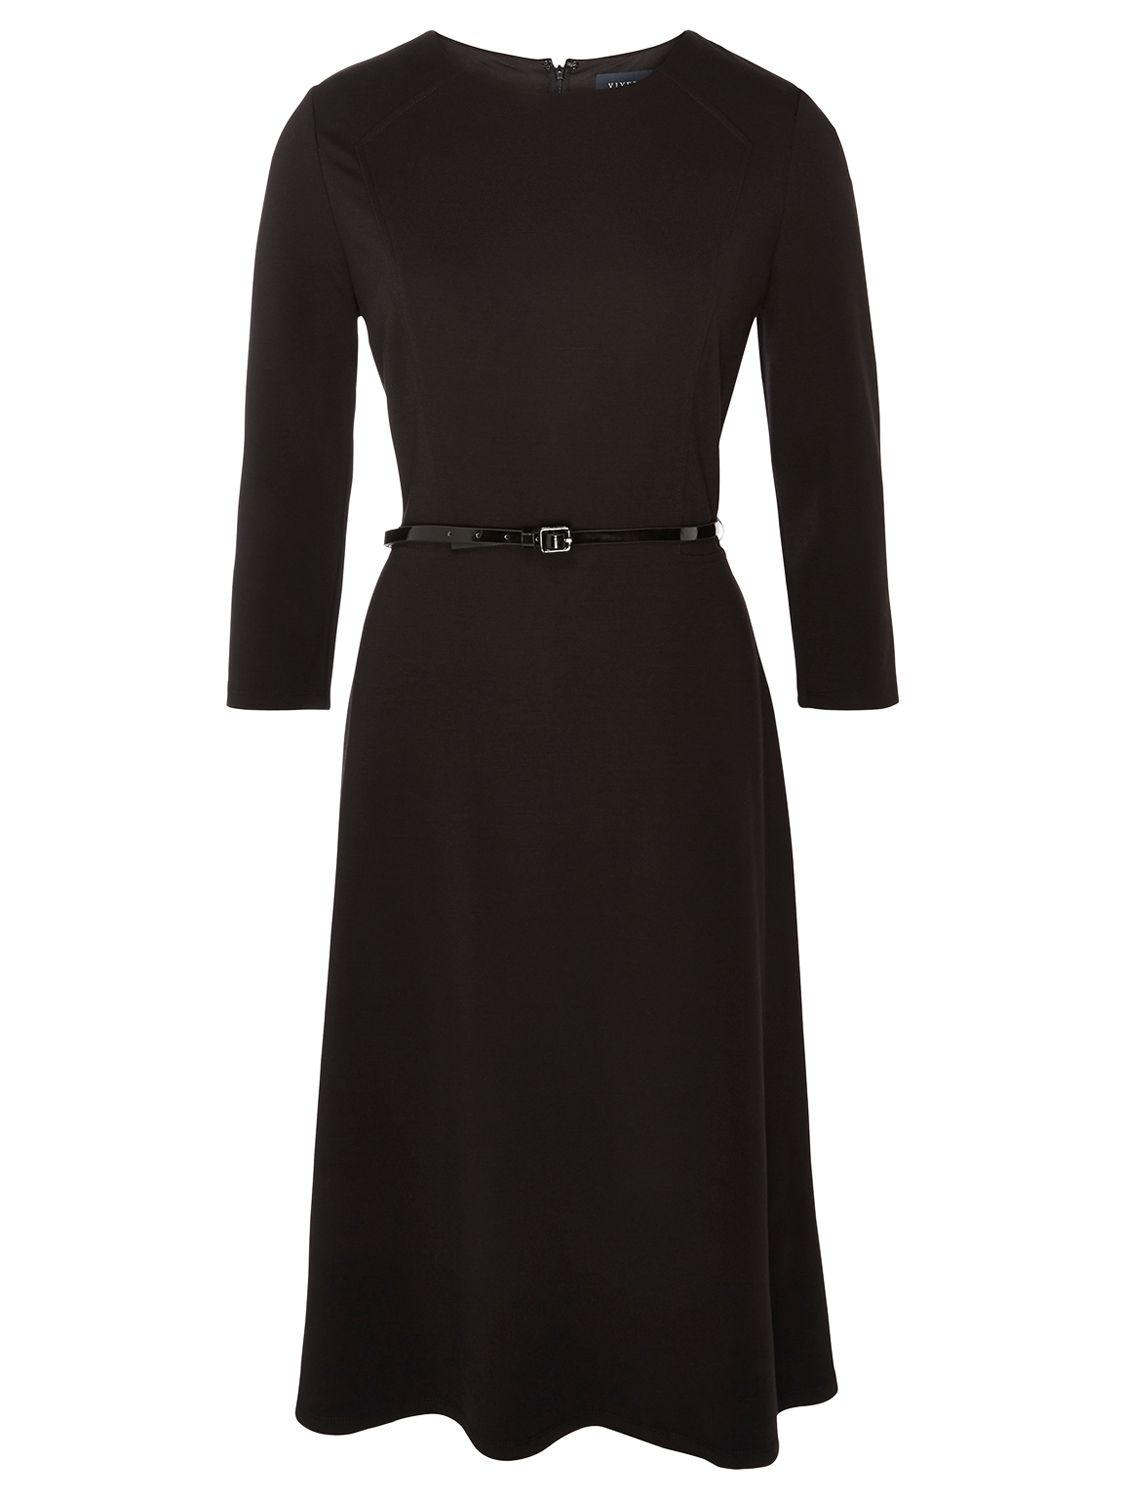 viyella ponte dress black, viyella, ponte, dress, black, 8 12 14, women, womens dresses, special offers, womenswear offers, latest reductions, womens dresses offers, up to 30% off selected viyella, 1797290